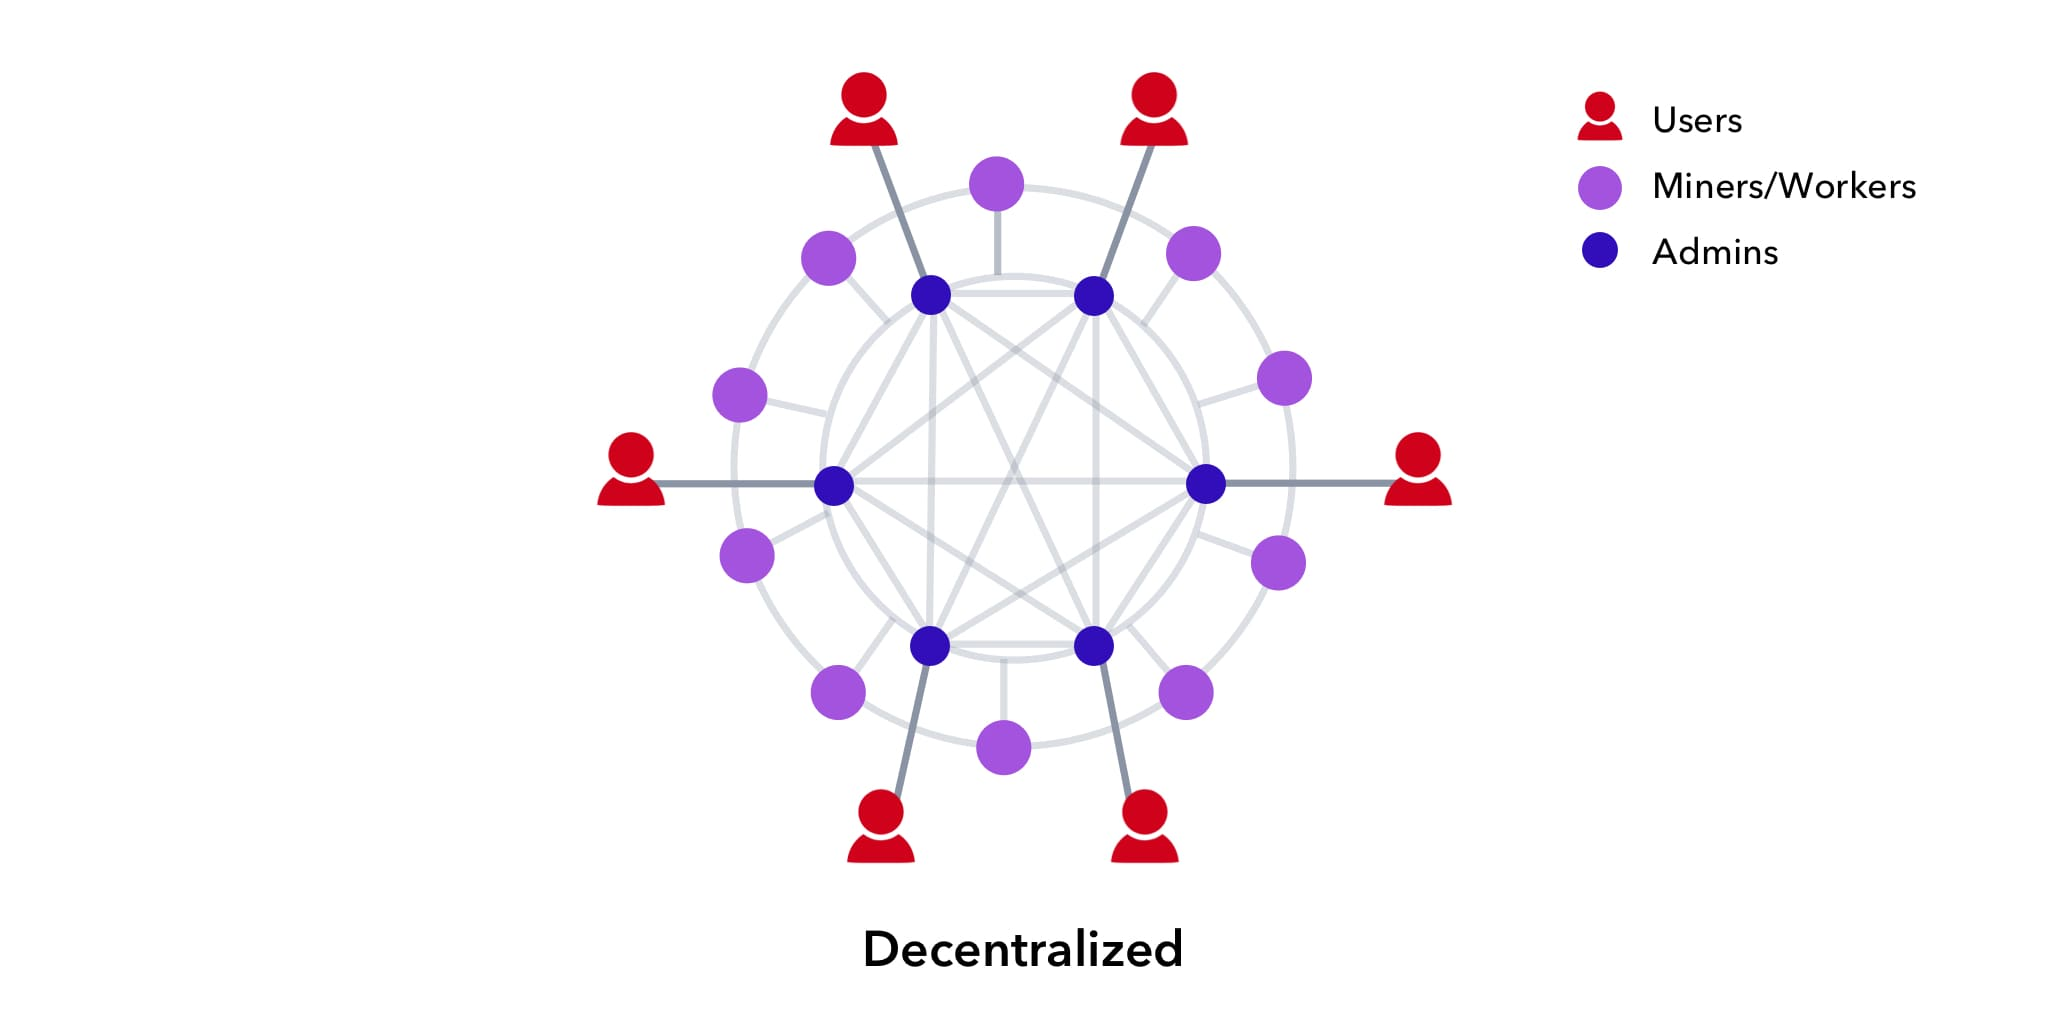 What Is Decentralized Technology By Dapp